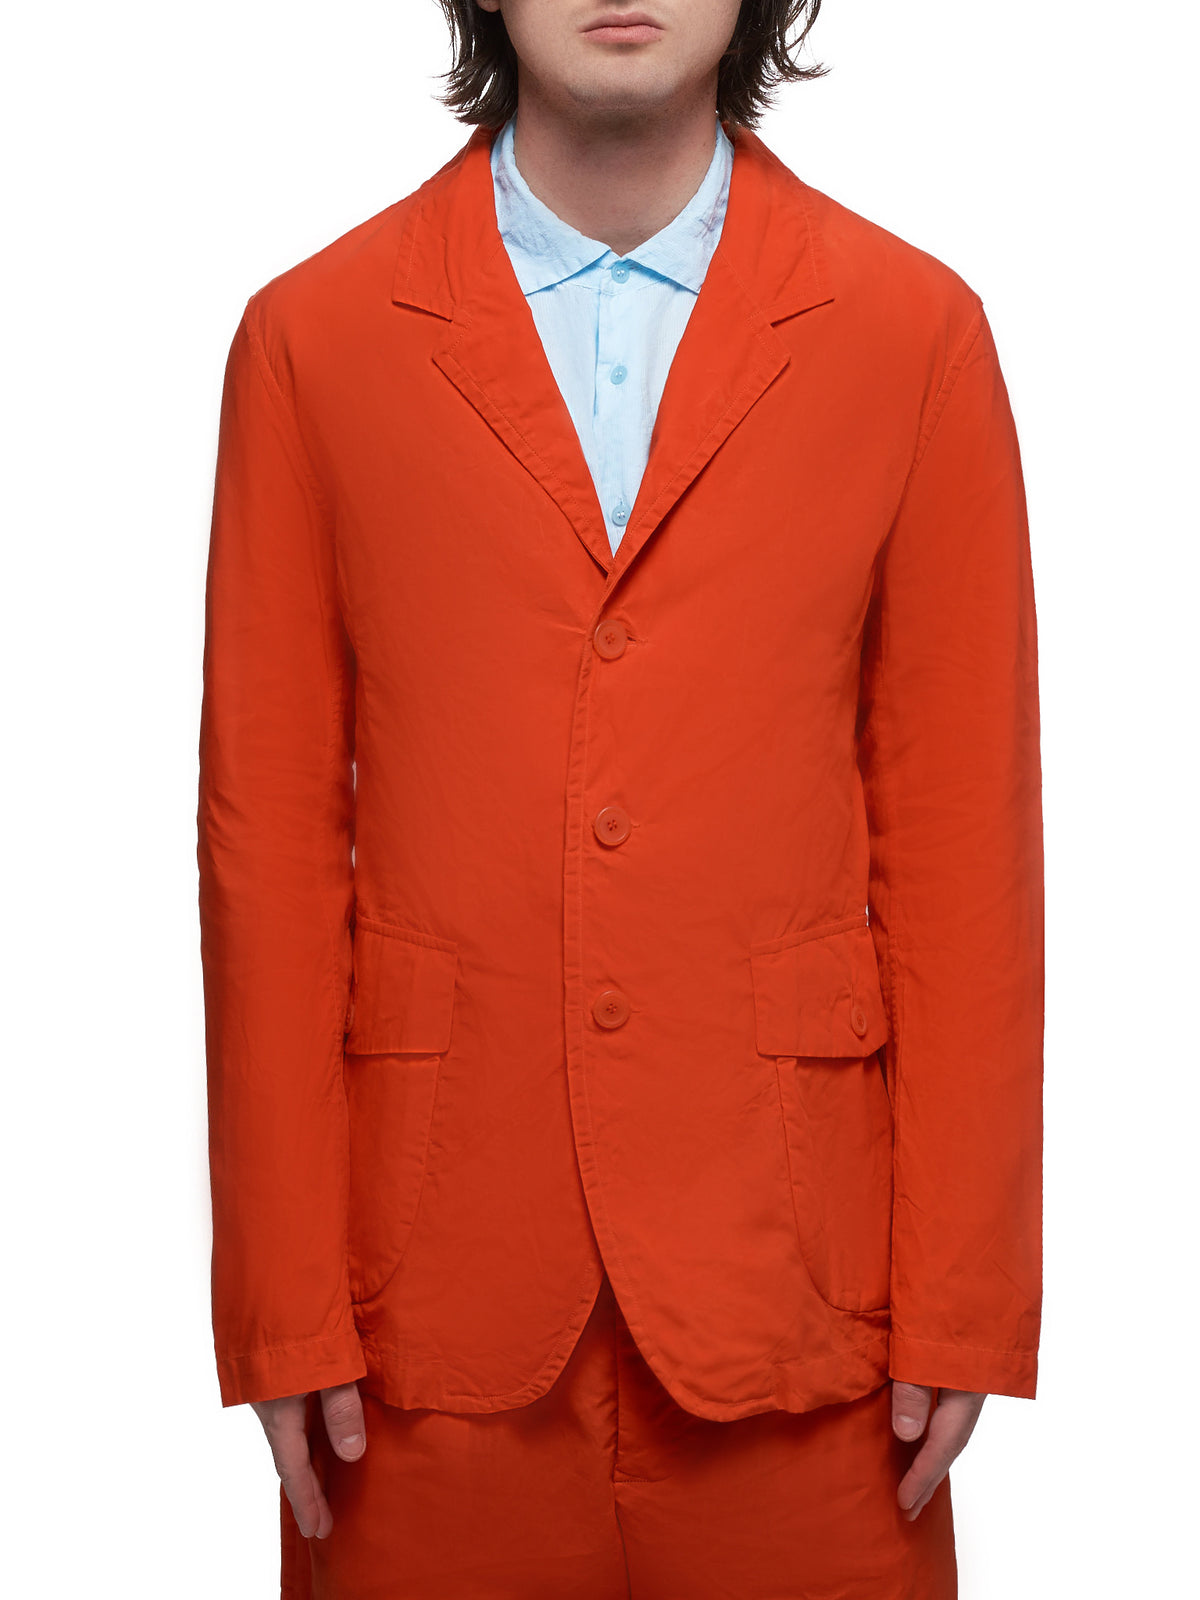 Crinkled Jacket (HV218-ORANGE)